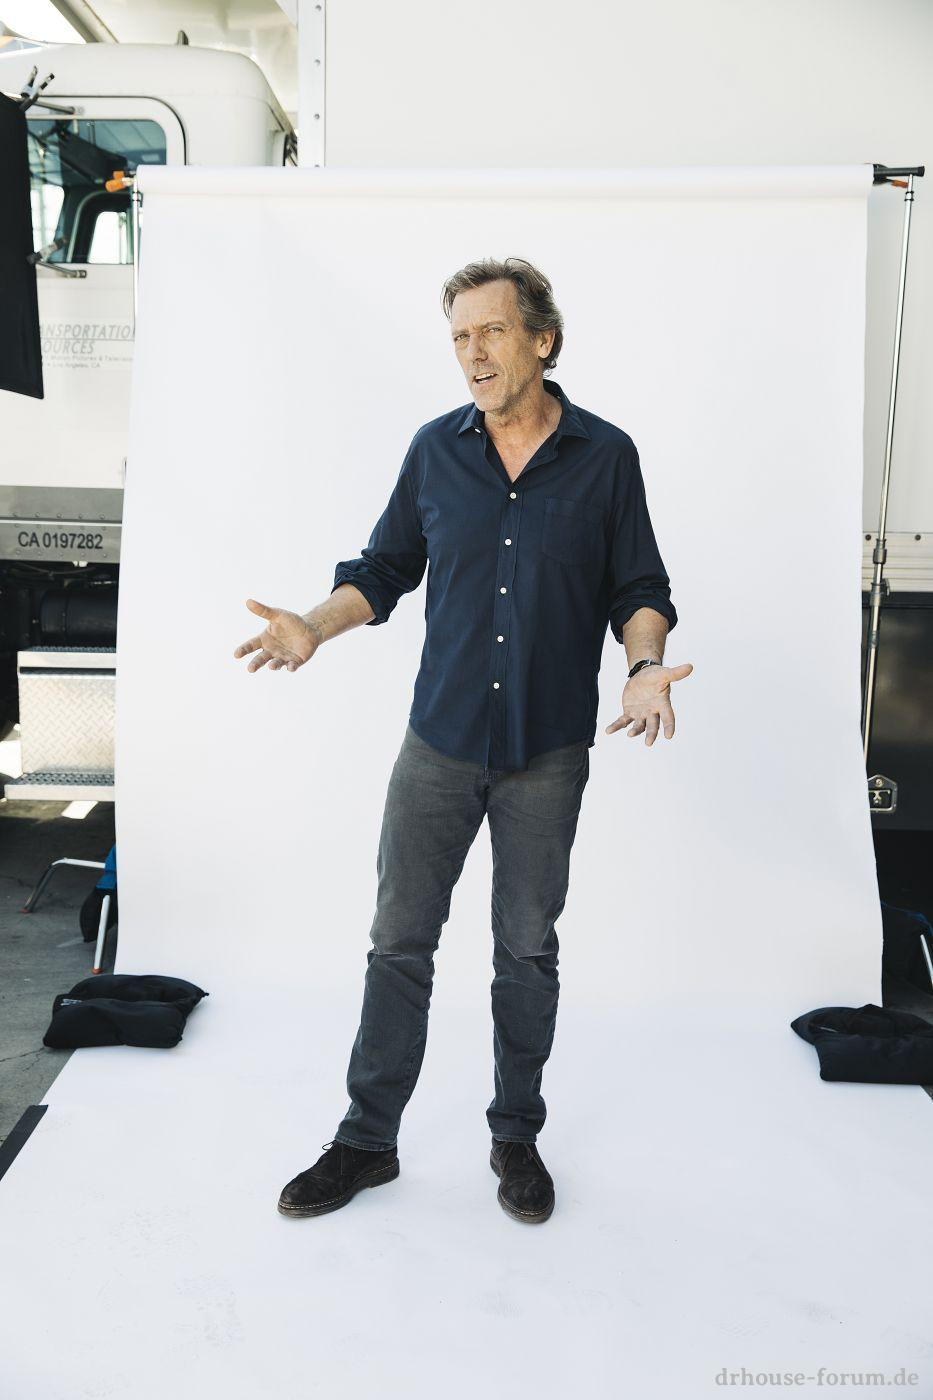 Hugh Laurie - Hulu Chance Outtakes Photoshooting.jpg